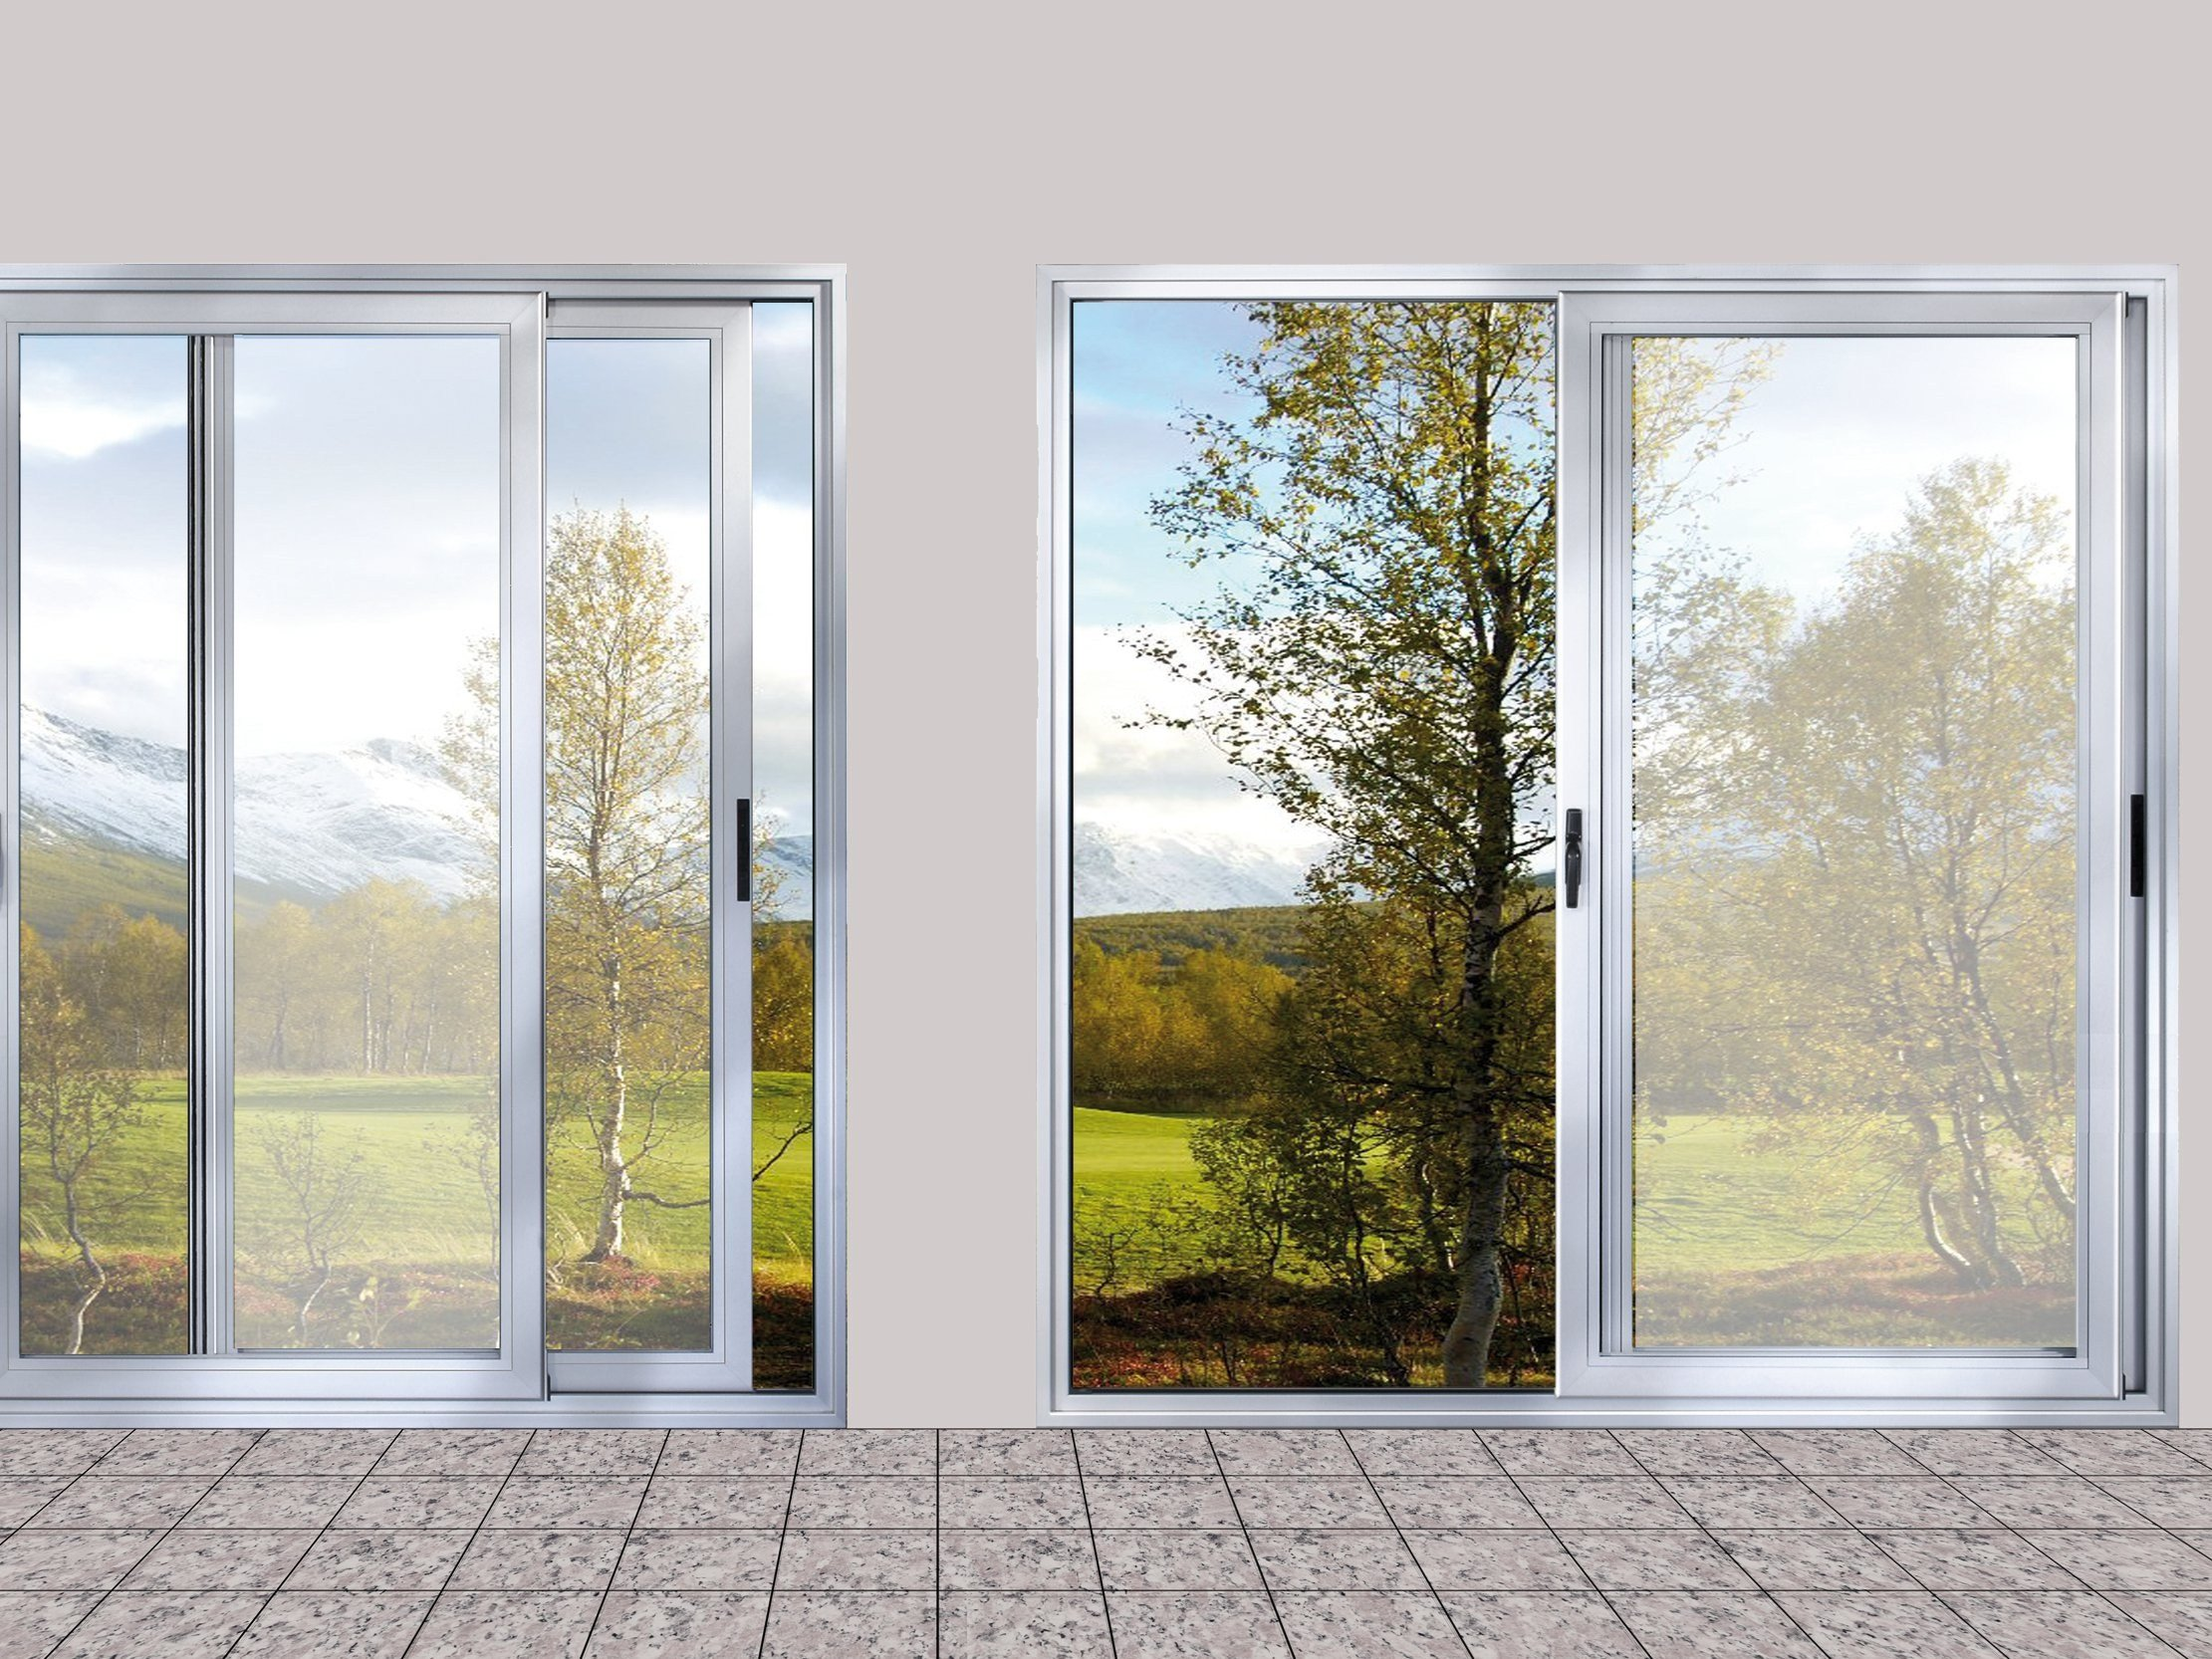 Aluminium sliding window eku 100 slide tt by profilati for Sliding window